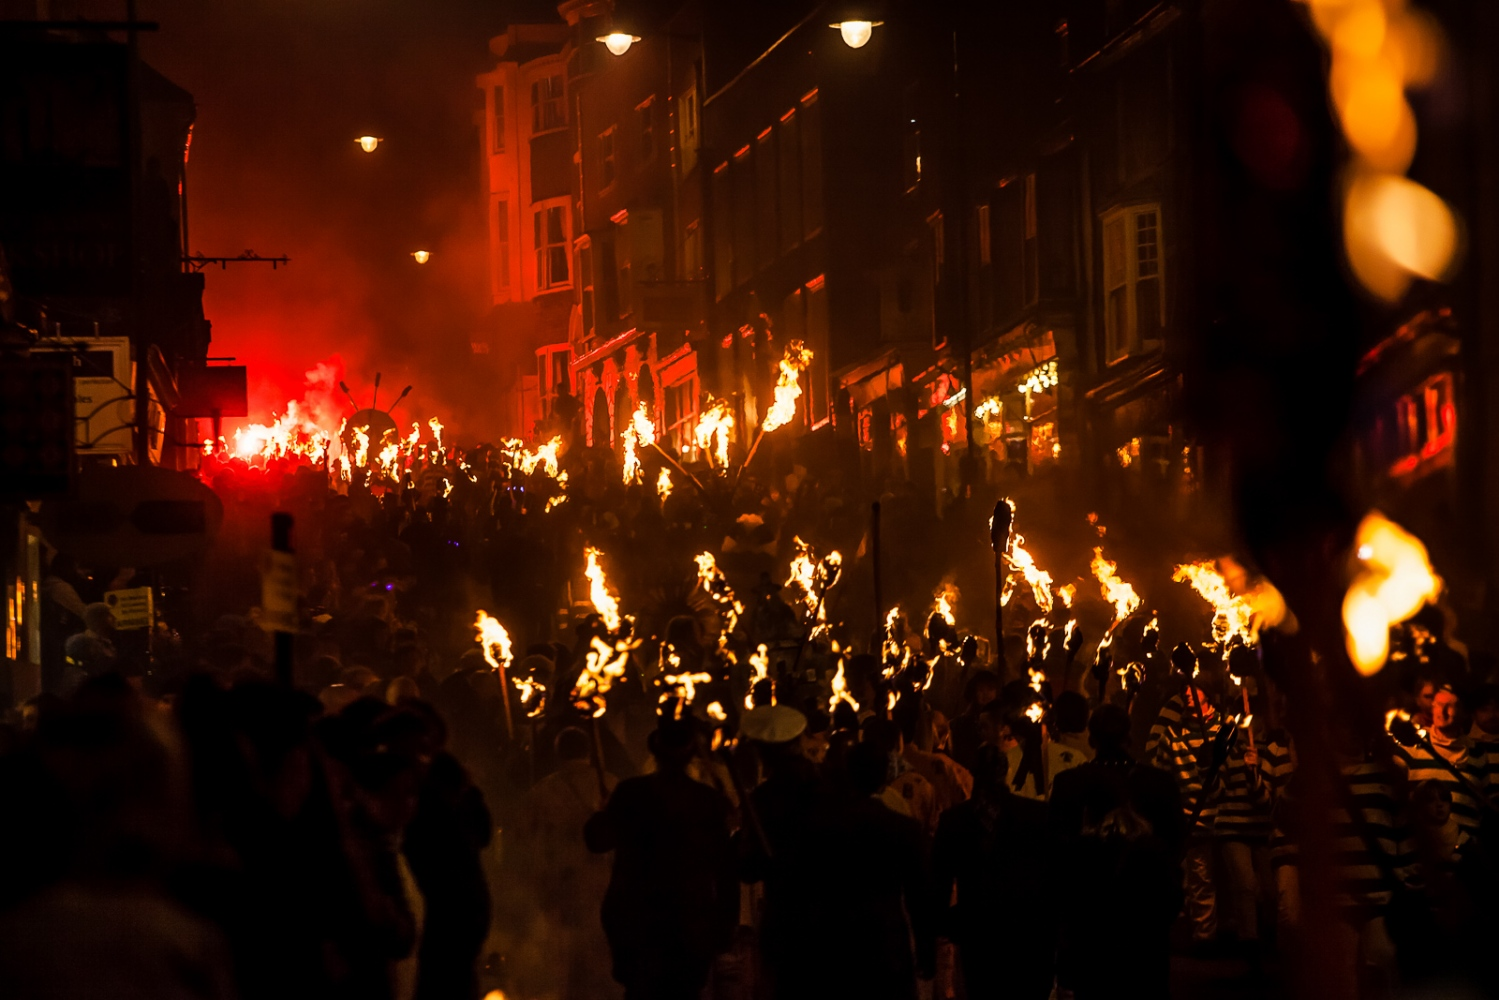 Lewes, UK, November 5, 2012: Parttakers in the yearly Lewes Bonfire parade walk through the streets with torches to comemmorate Guy Fawkes Night.